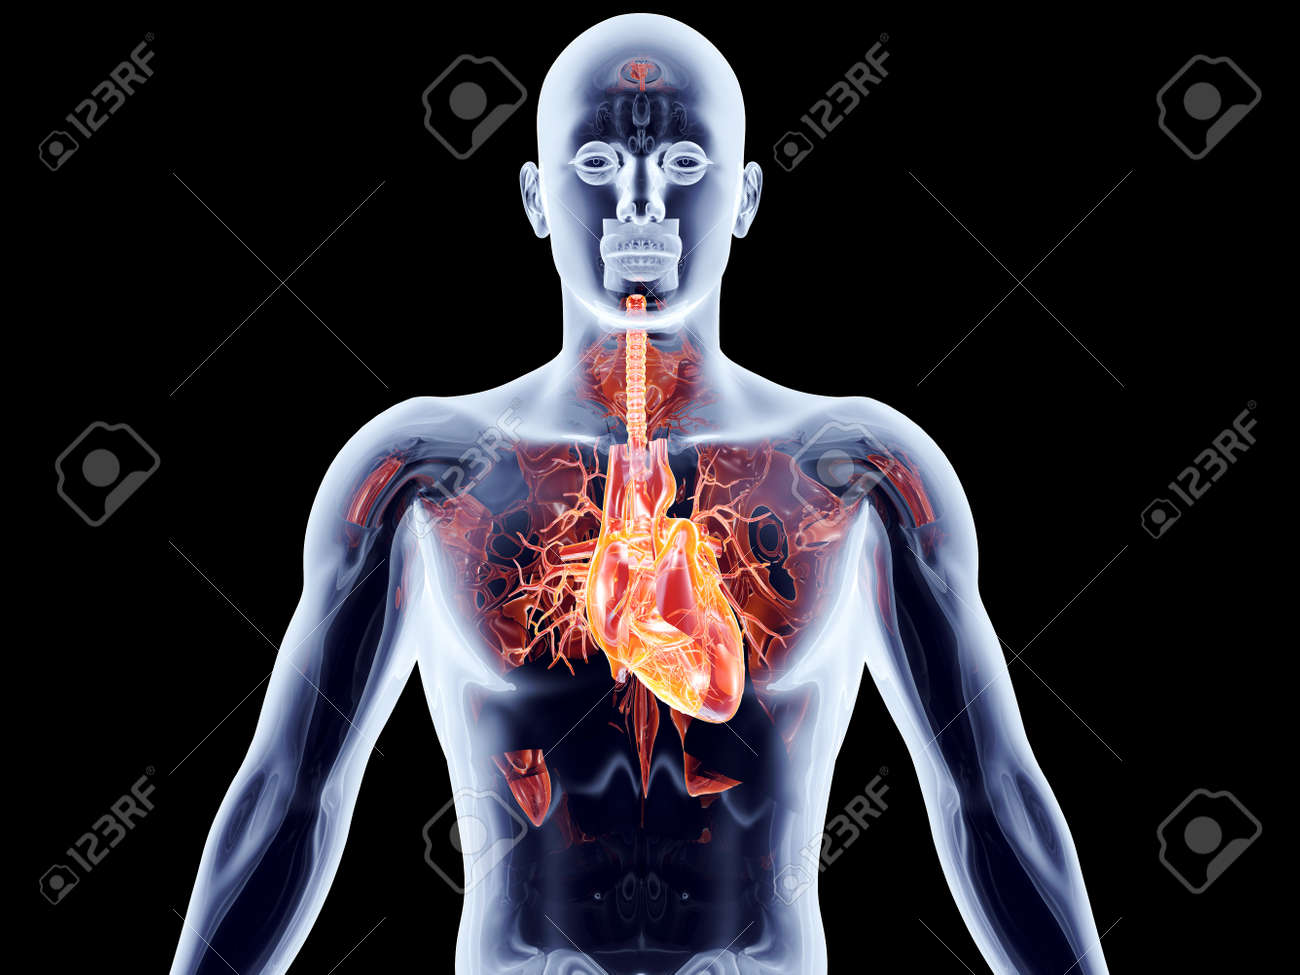 The human heart. 3D rendered anatomical illustration. Stock Photo - 17784555